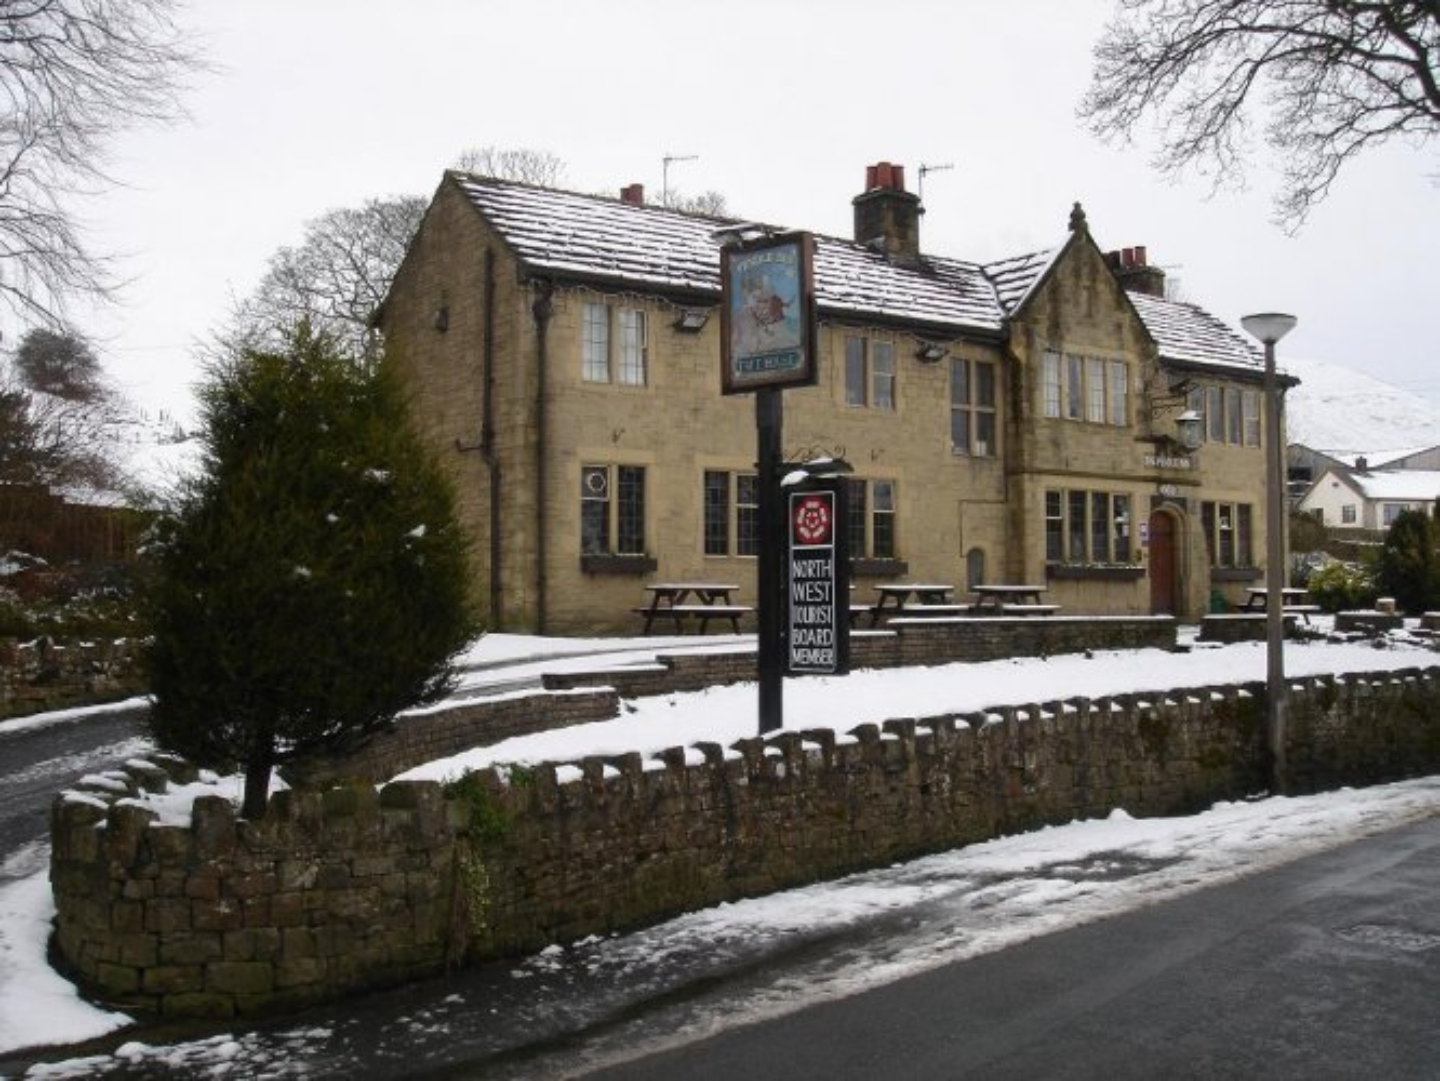 A house covered in snow at The Pendle Inn.